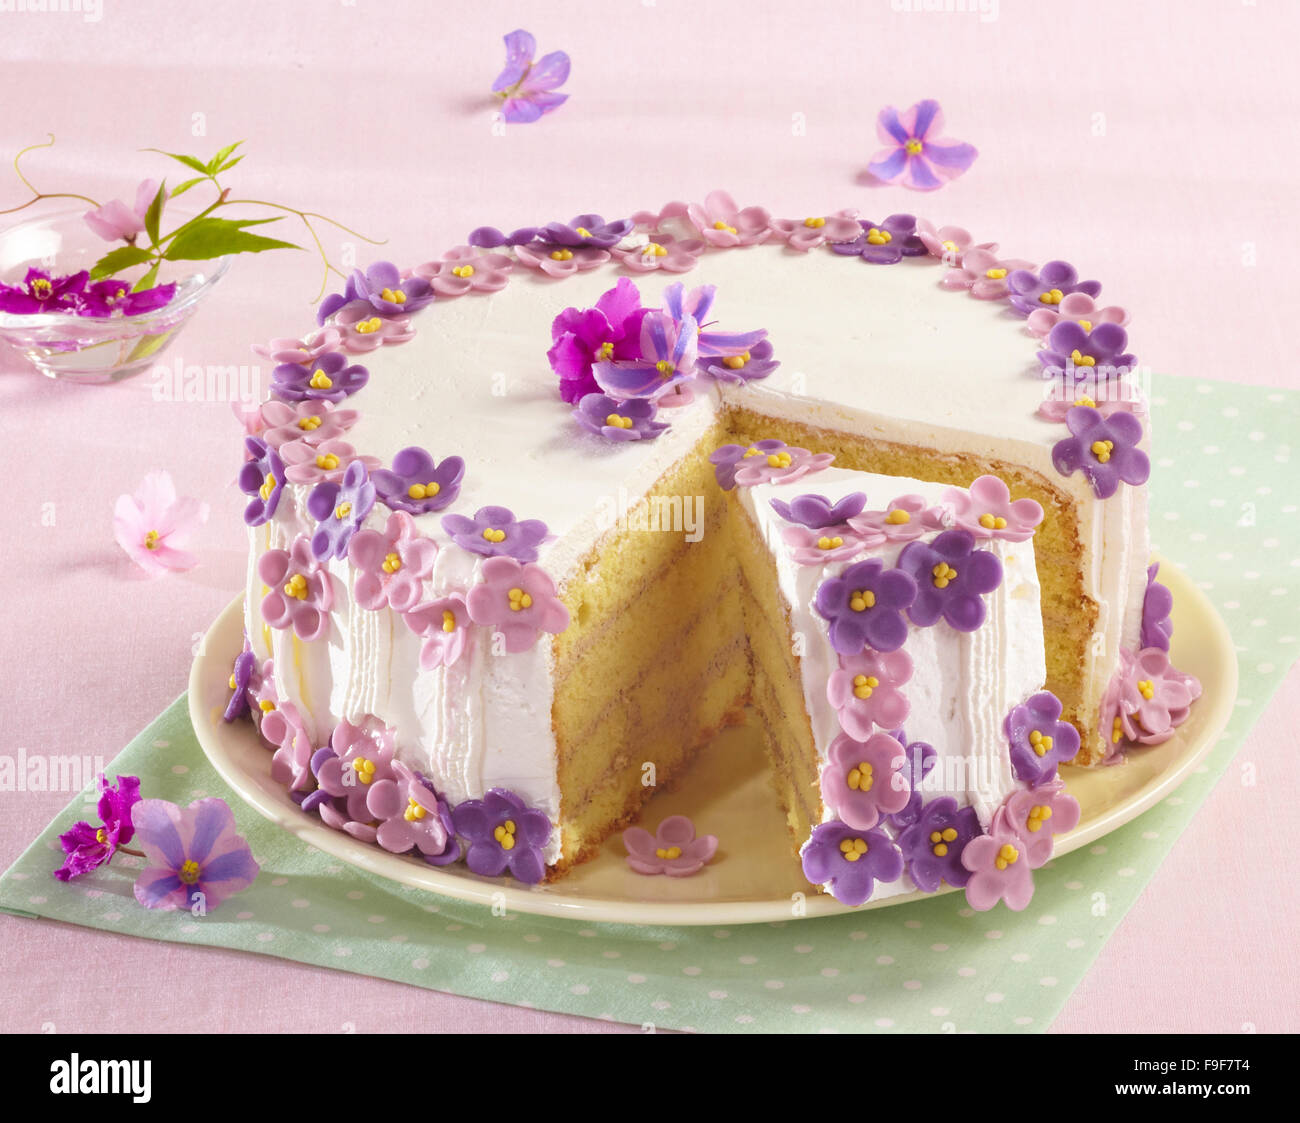 Stock Photo Violet Cake Step By Step